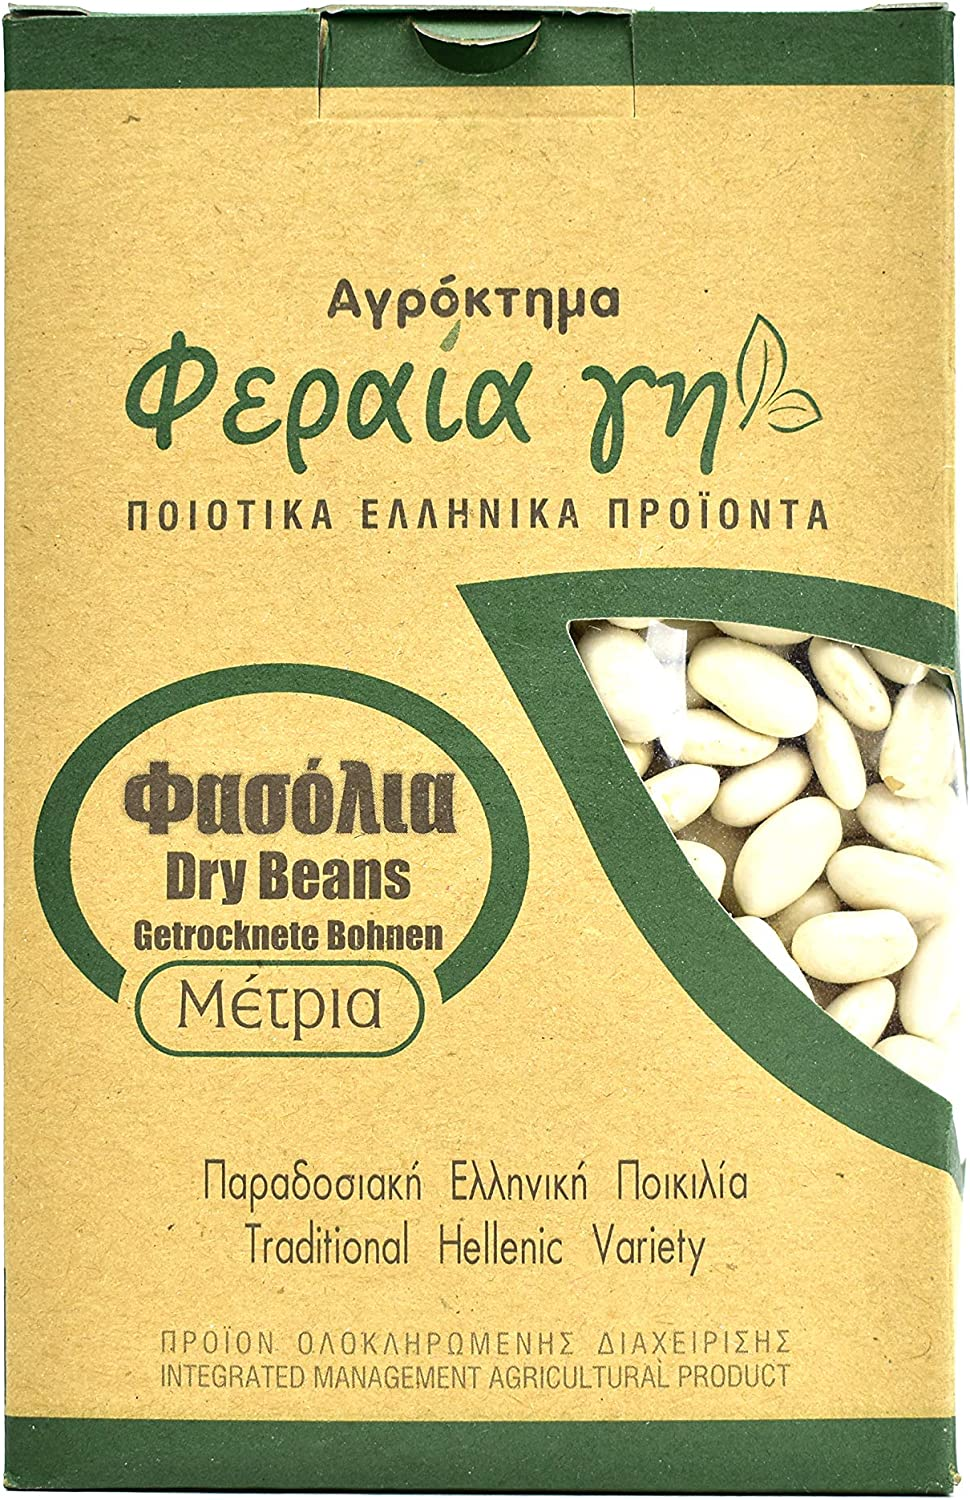 Greek White Kidney Beans By Terra Ferea New Harvest Of A Traditional Greek Variety 500grams Amazon Co Uk Grocery